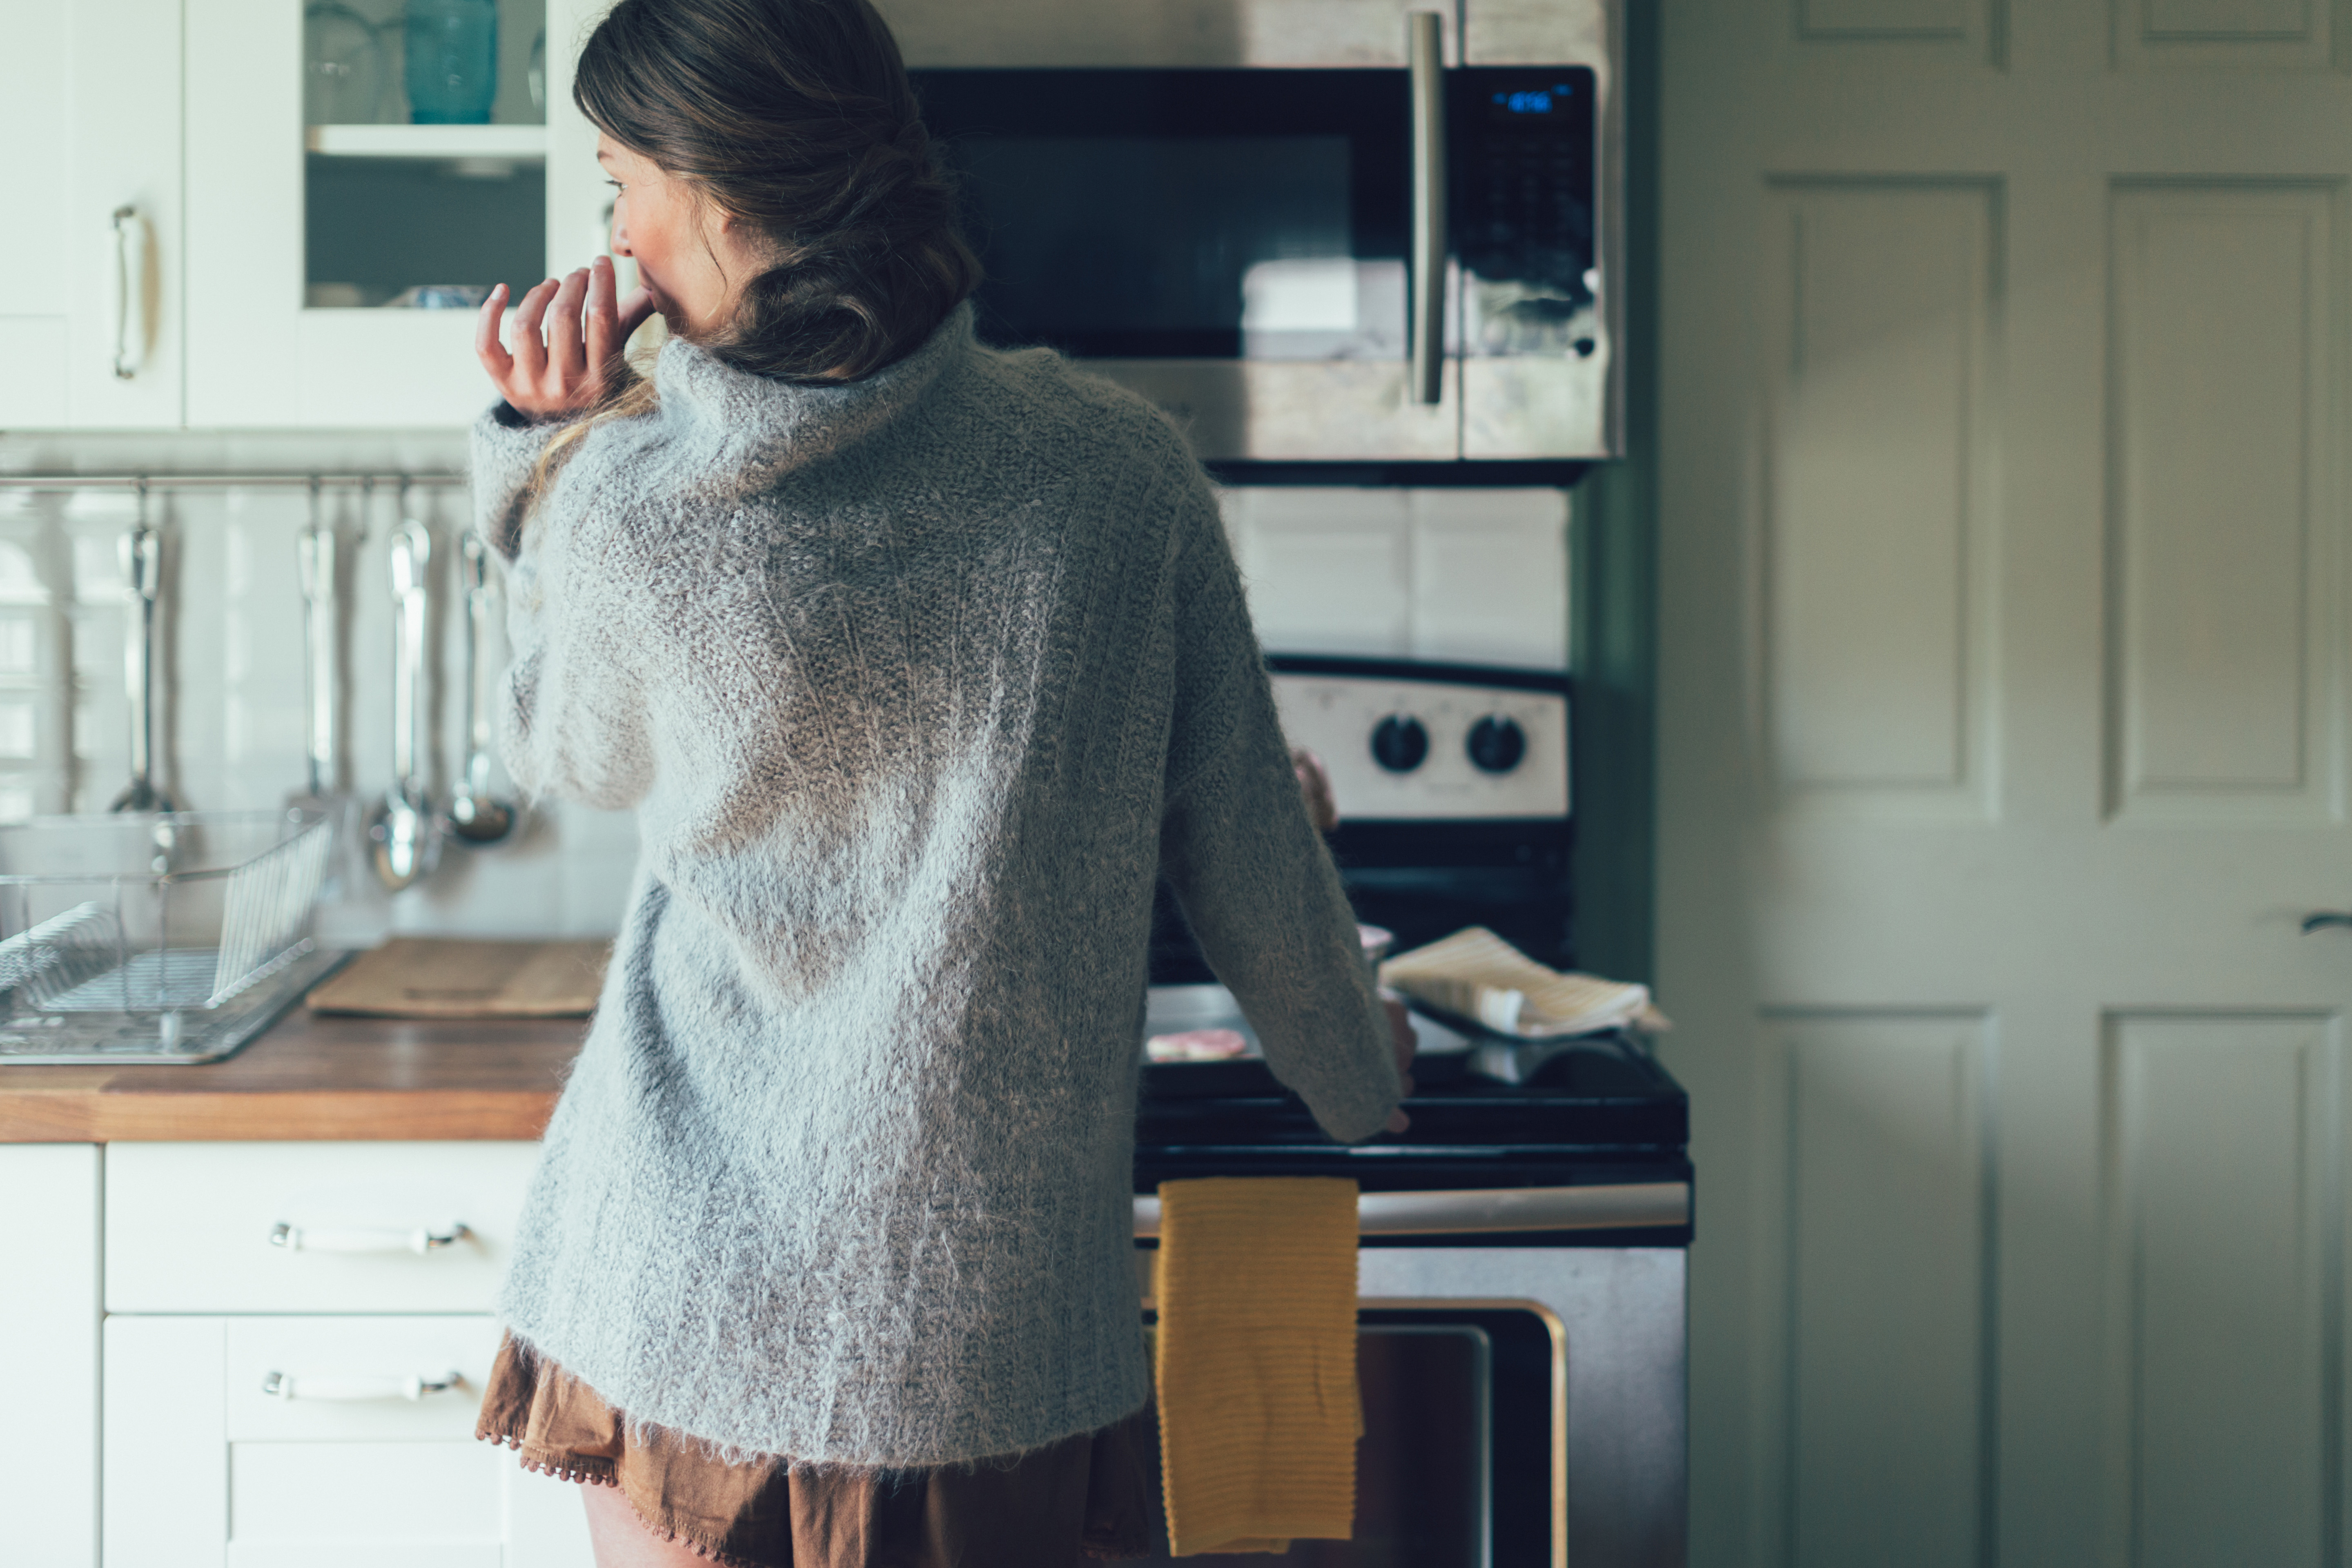 frosting pullover knitting pattern by courtney spainhower